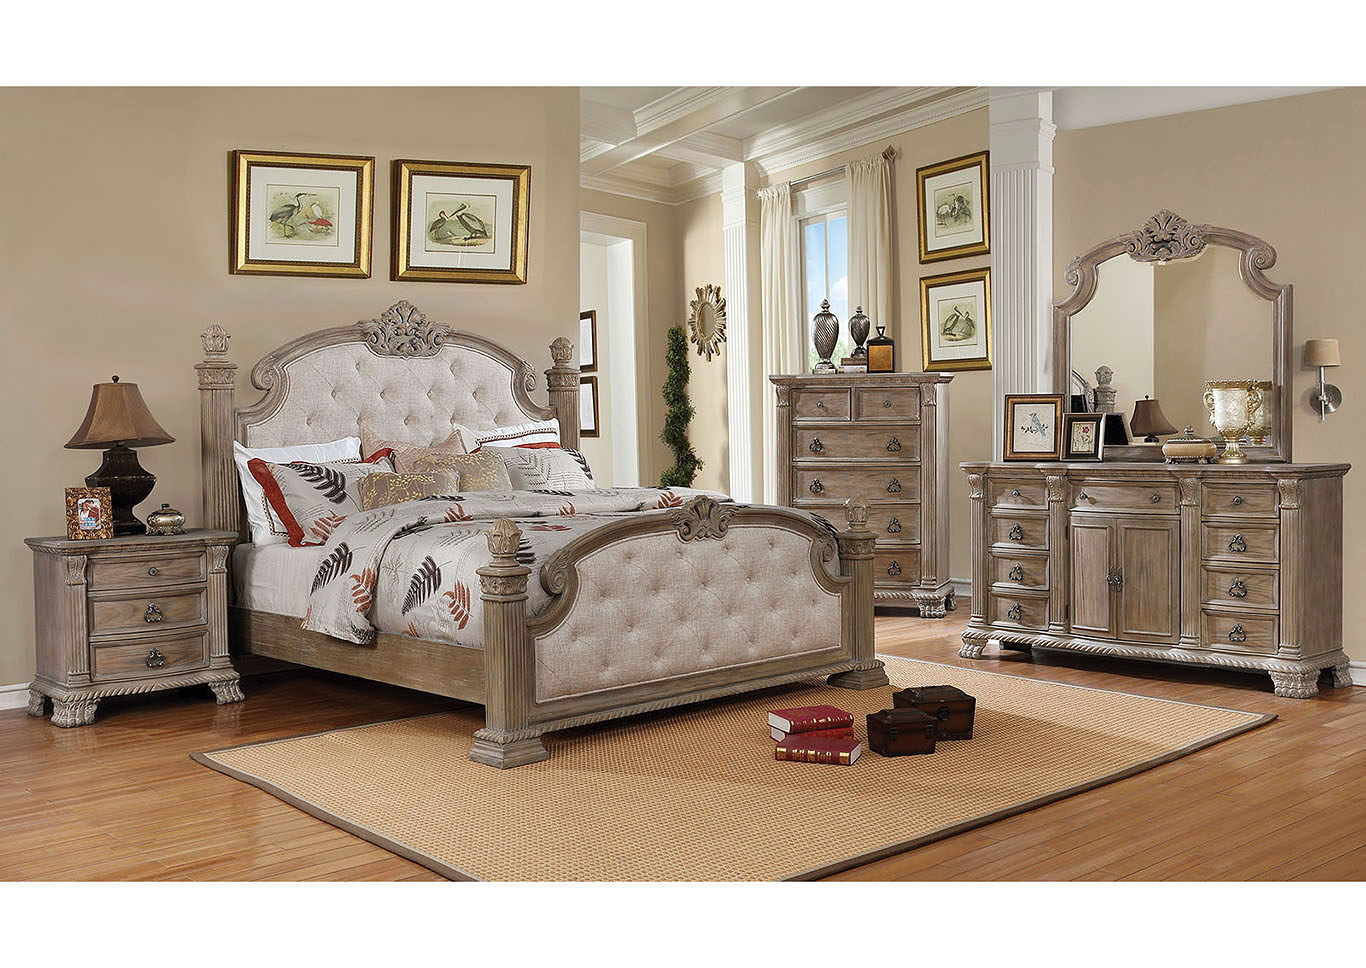 Montgomery Rustic Natural Dresser and Mirror,Furniture of America